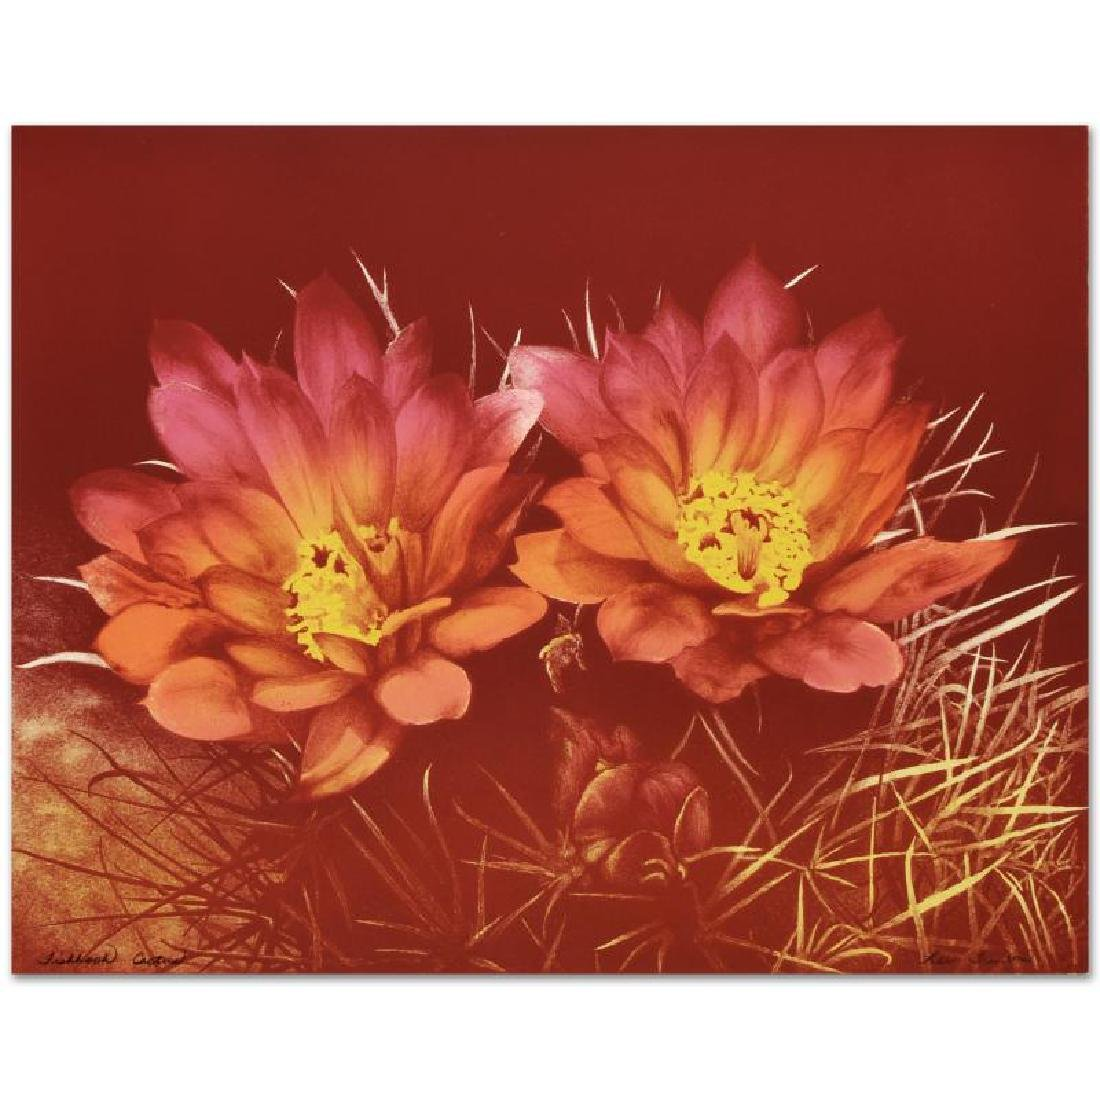 """Fishhook Cactus"" Limited Edition Lithograph by Lee"